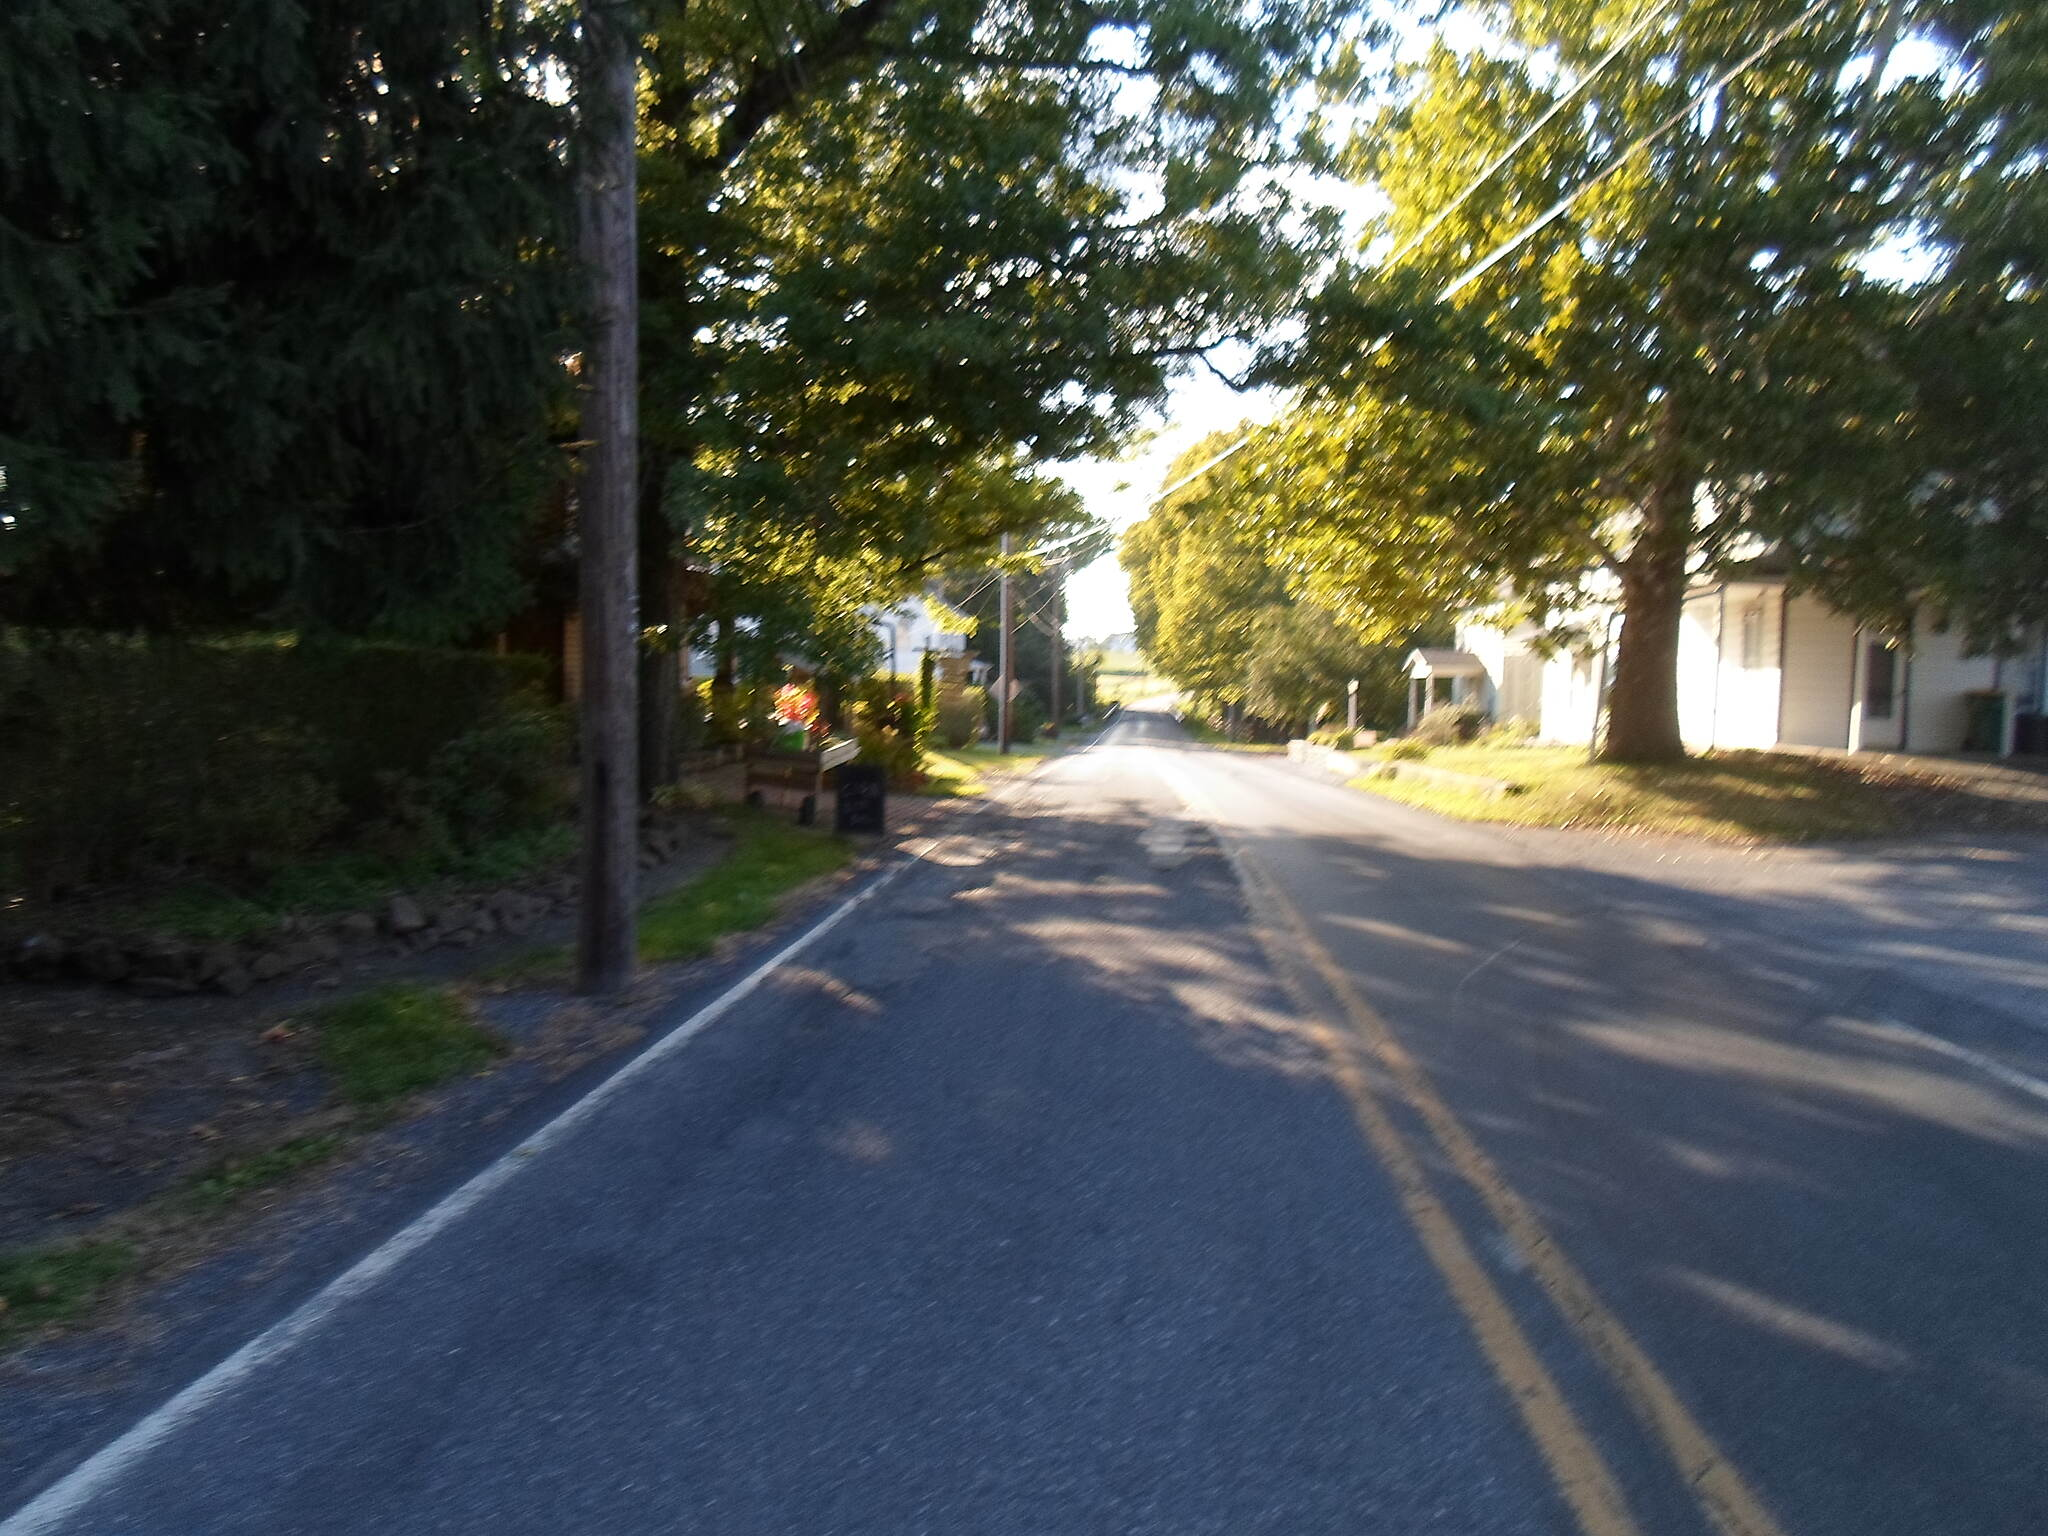 Lebanon Valley Rail-Trail Lebanon Valley Rail Trail View down the road from the trail crossing next to Lawn Community Park in the small rural village in southwest Lebanon County.